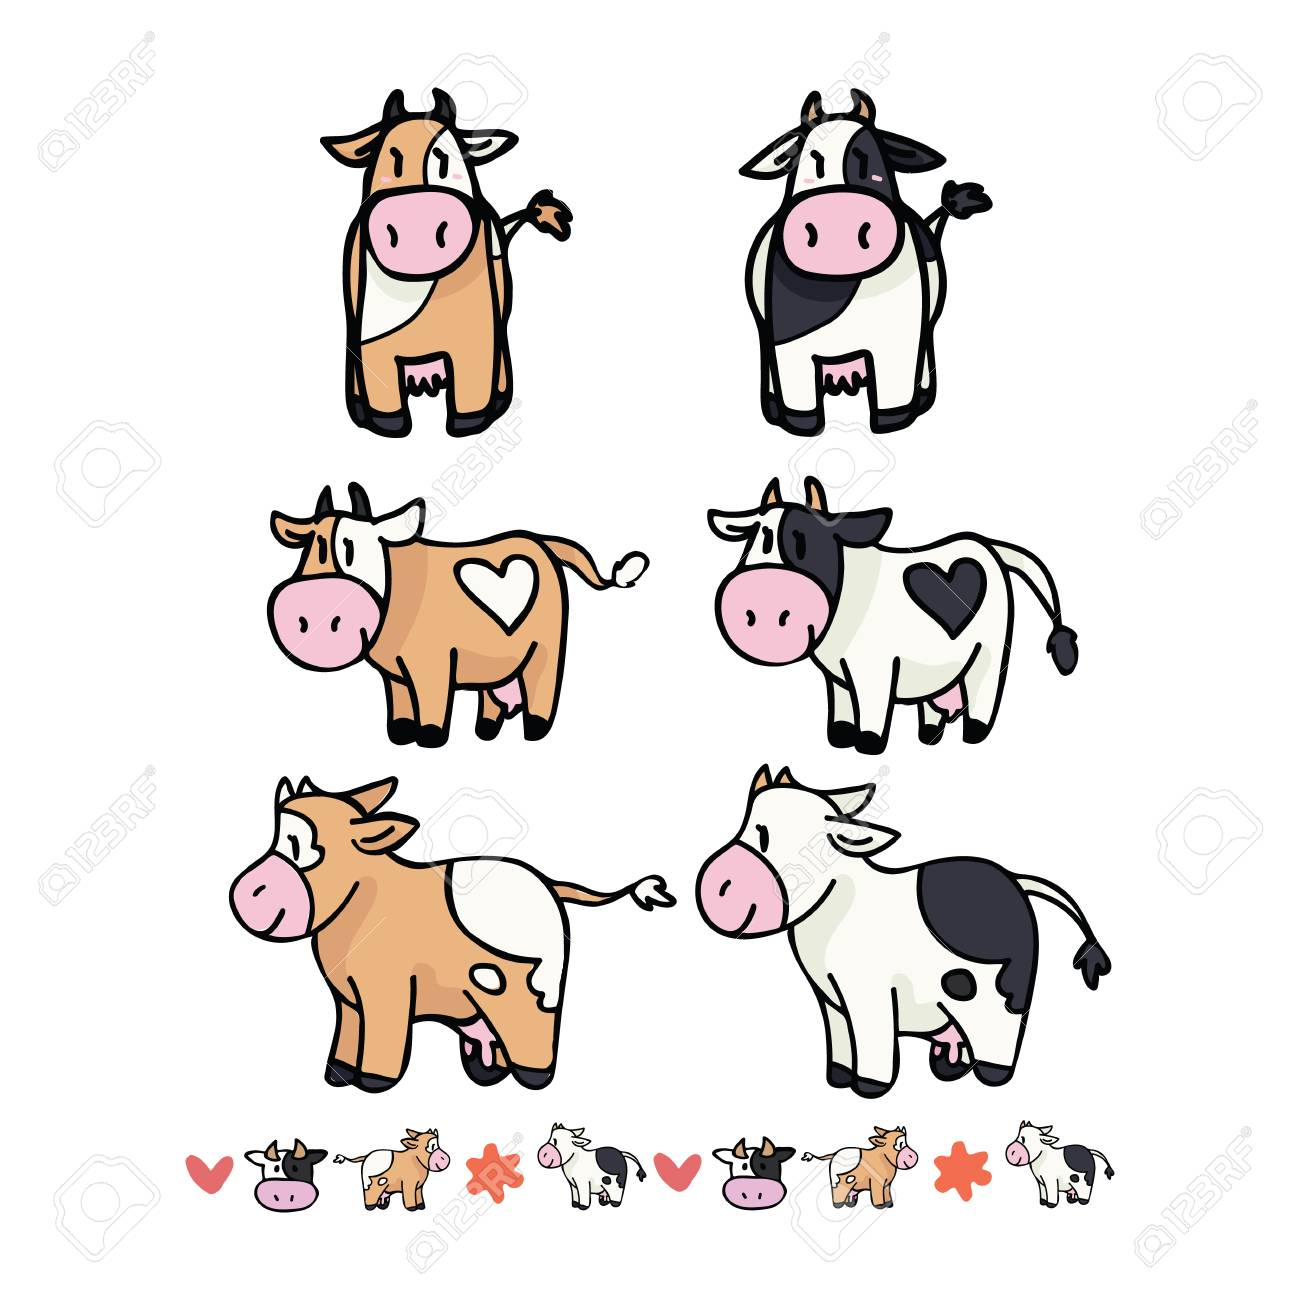 hight resolution of cute cow collection cartoon vector illustration motif set with border hand drawn isolated farm animal